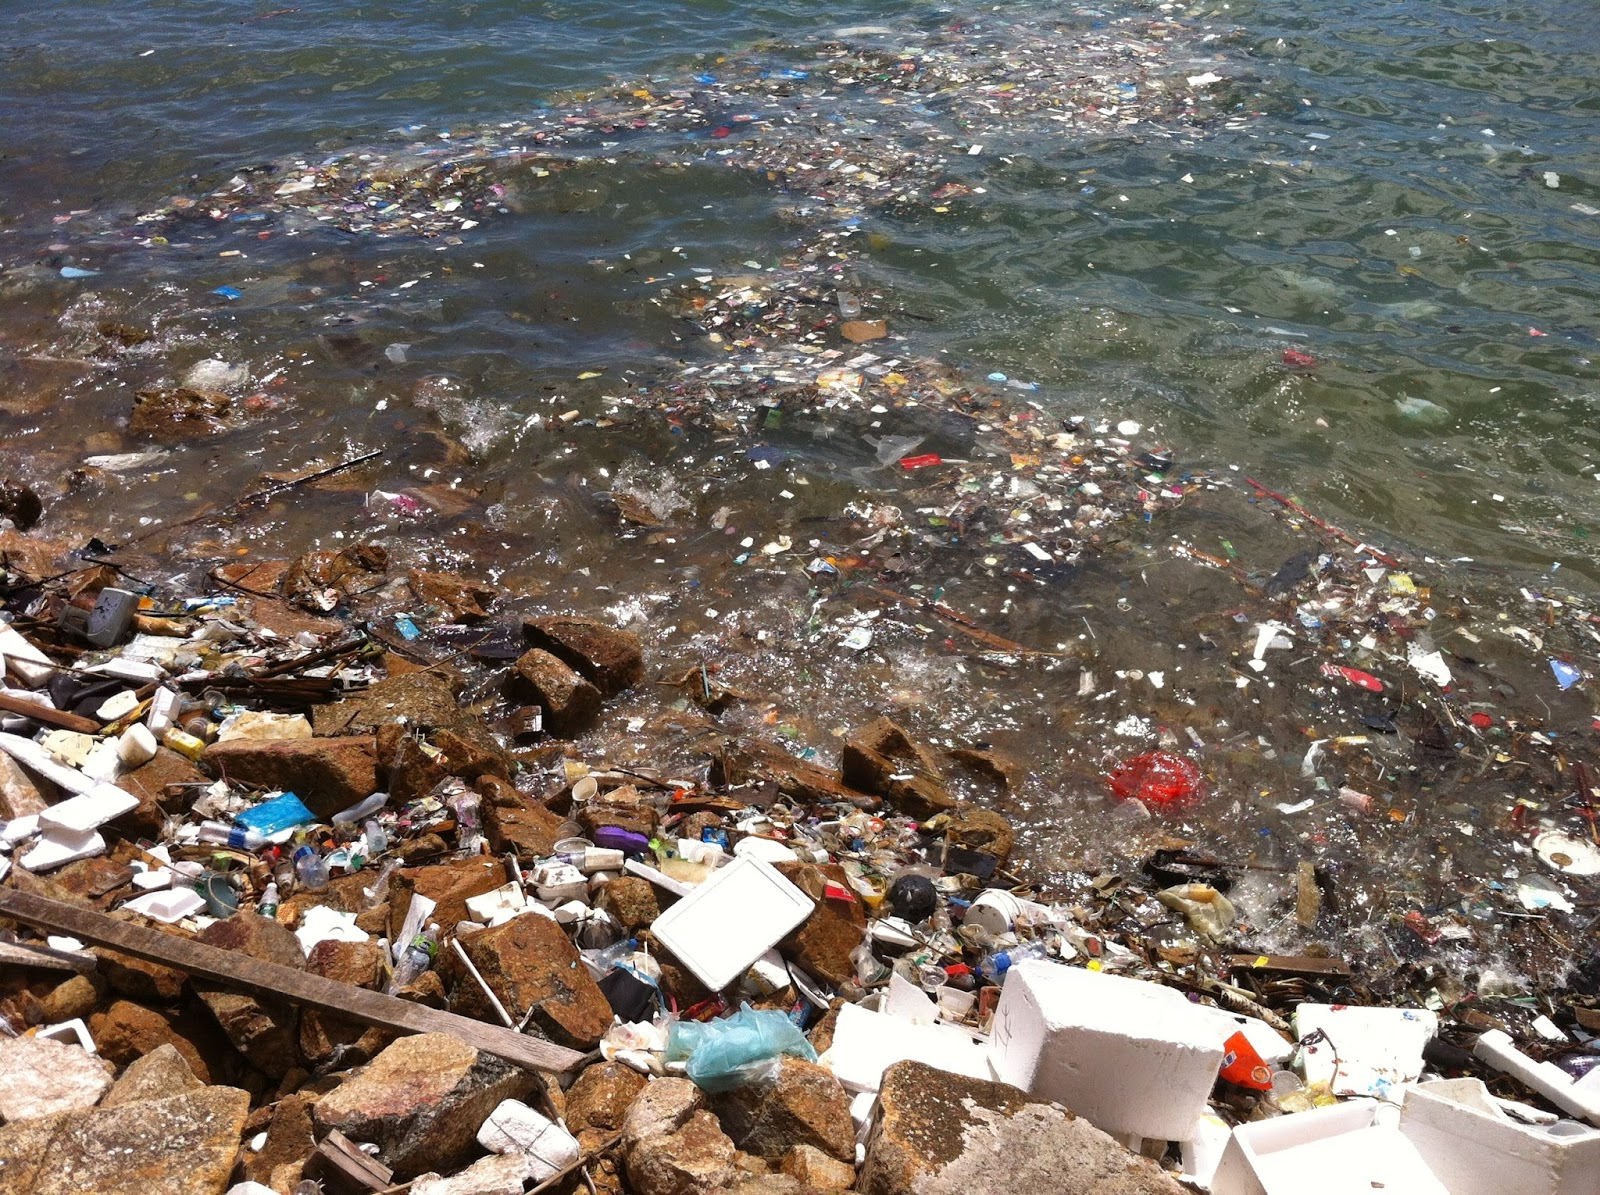 Eastern pacific garbage patch photos 13 Old Bronx Pics You May Not Recognize - Welcome2TheBronx